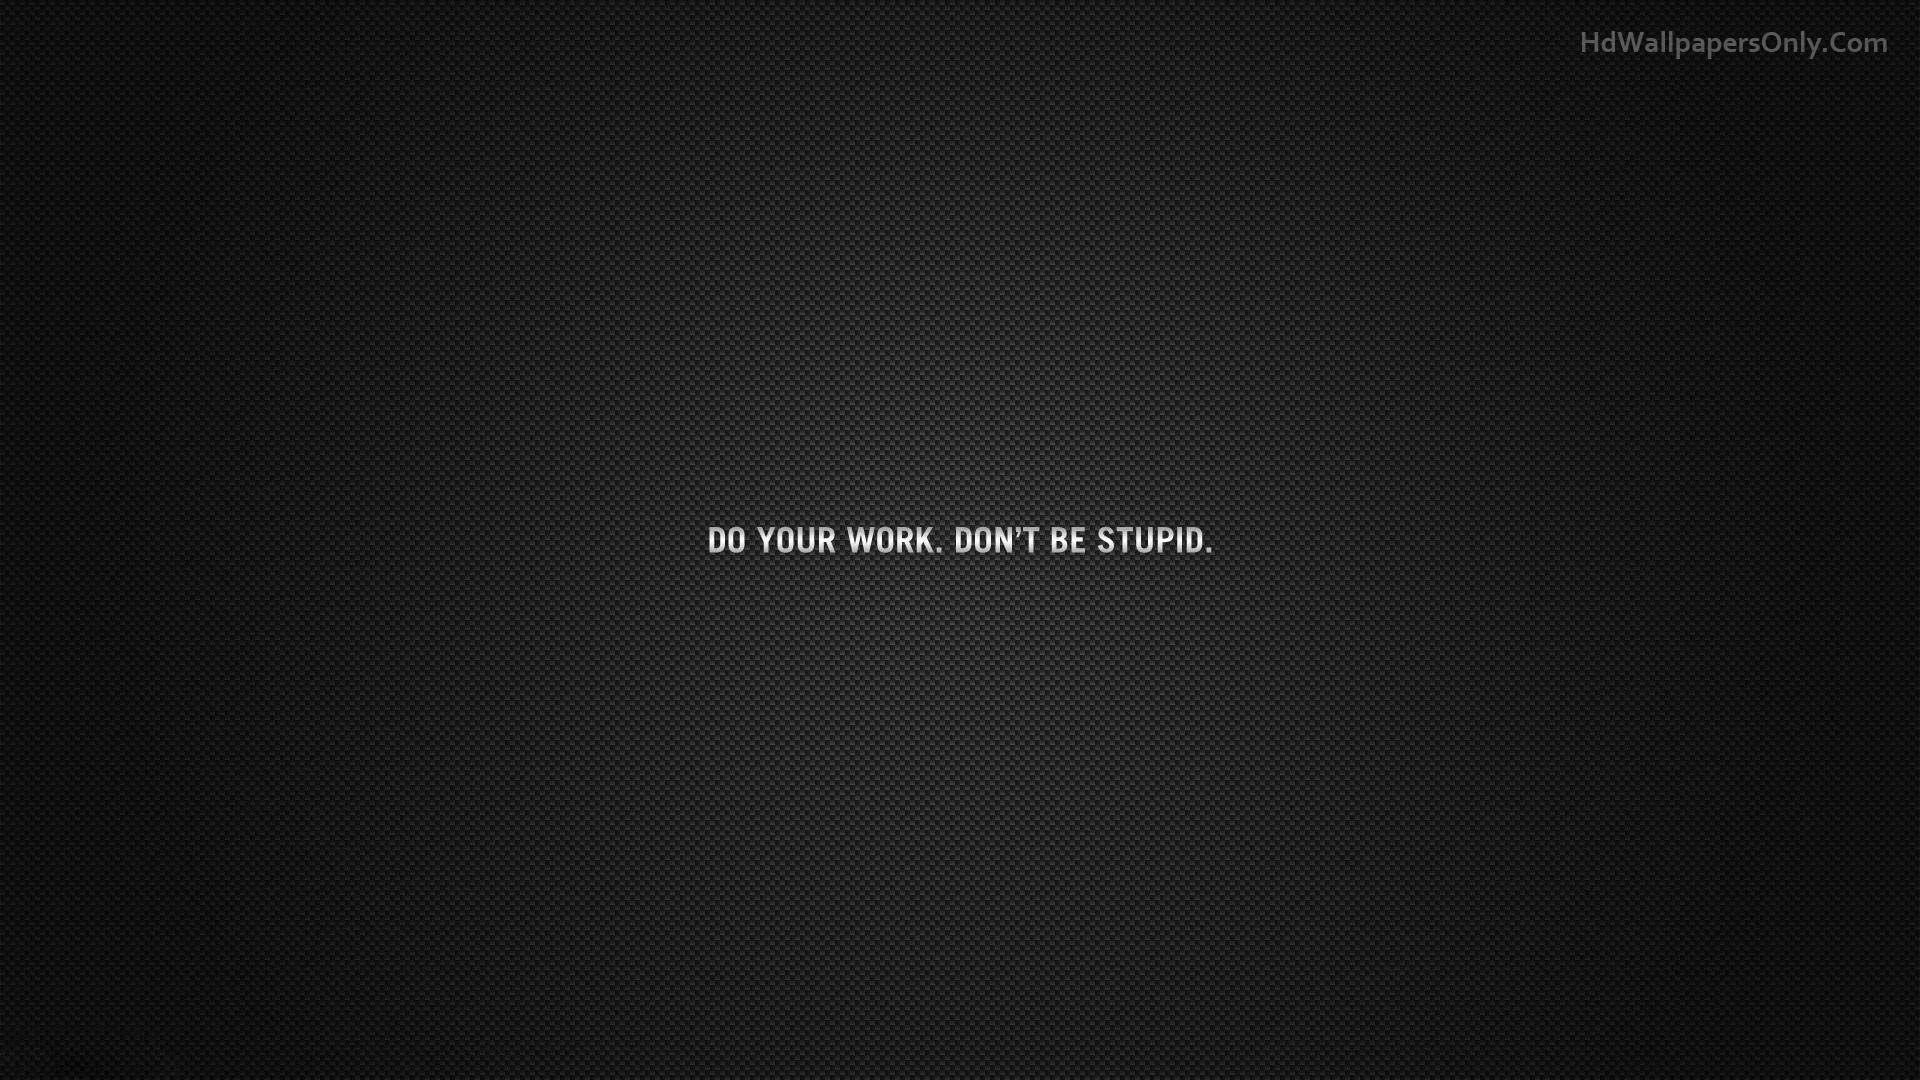 Do your work Inspirational quotes wallpapers Work quotes Life 1920x1080